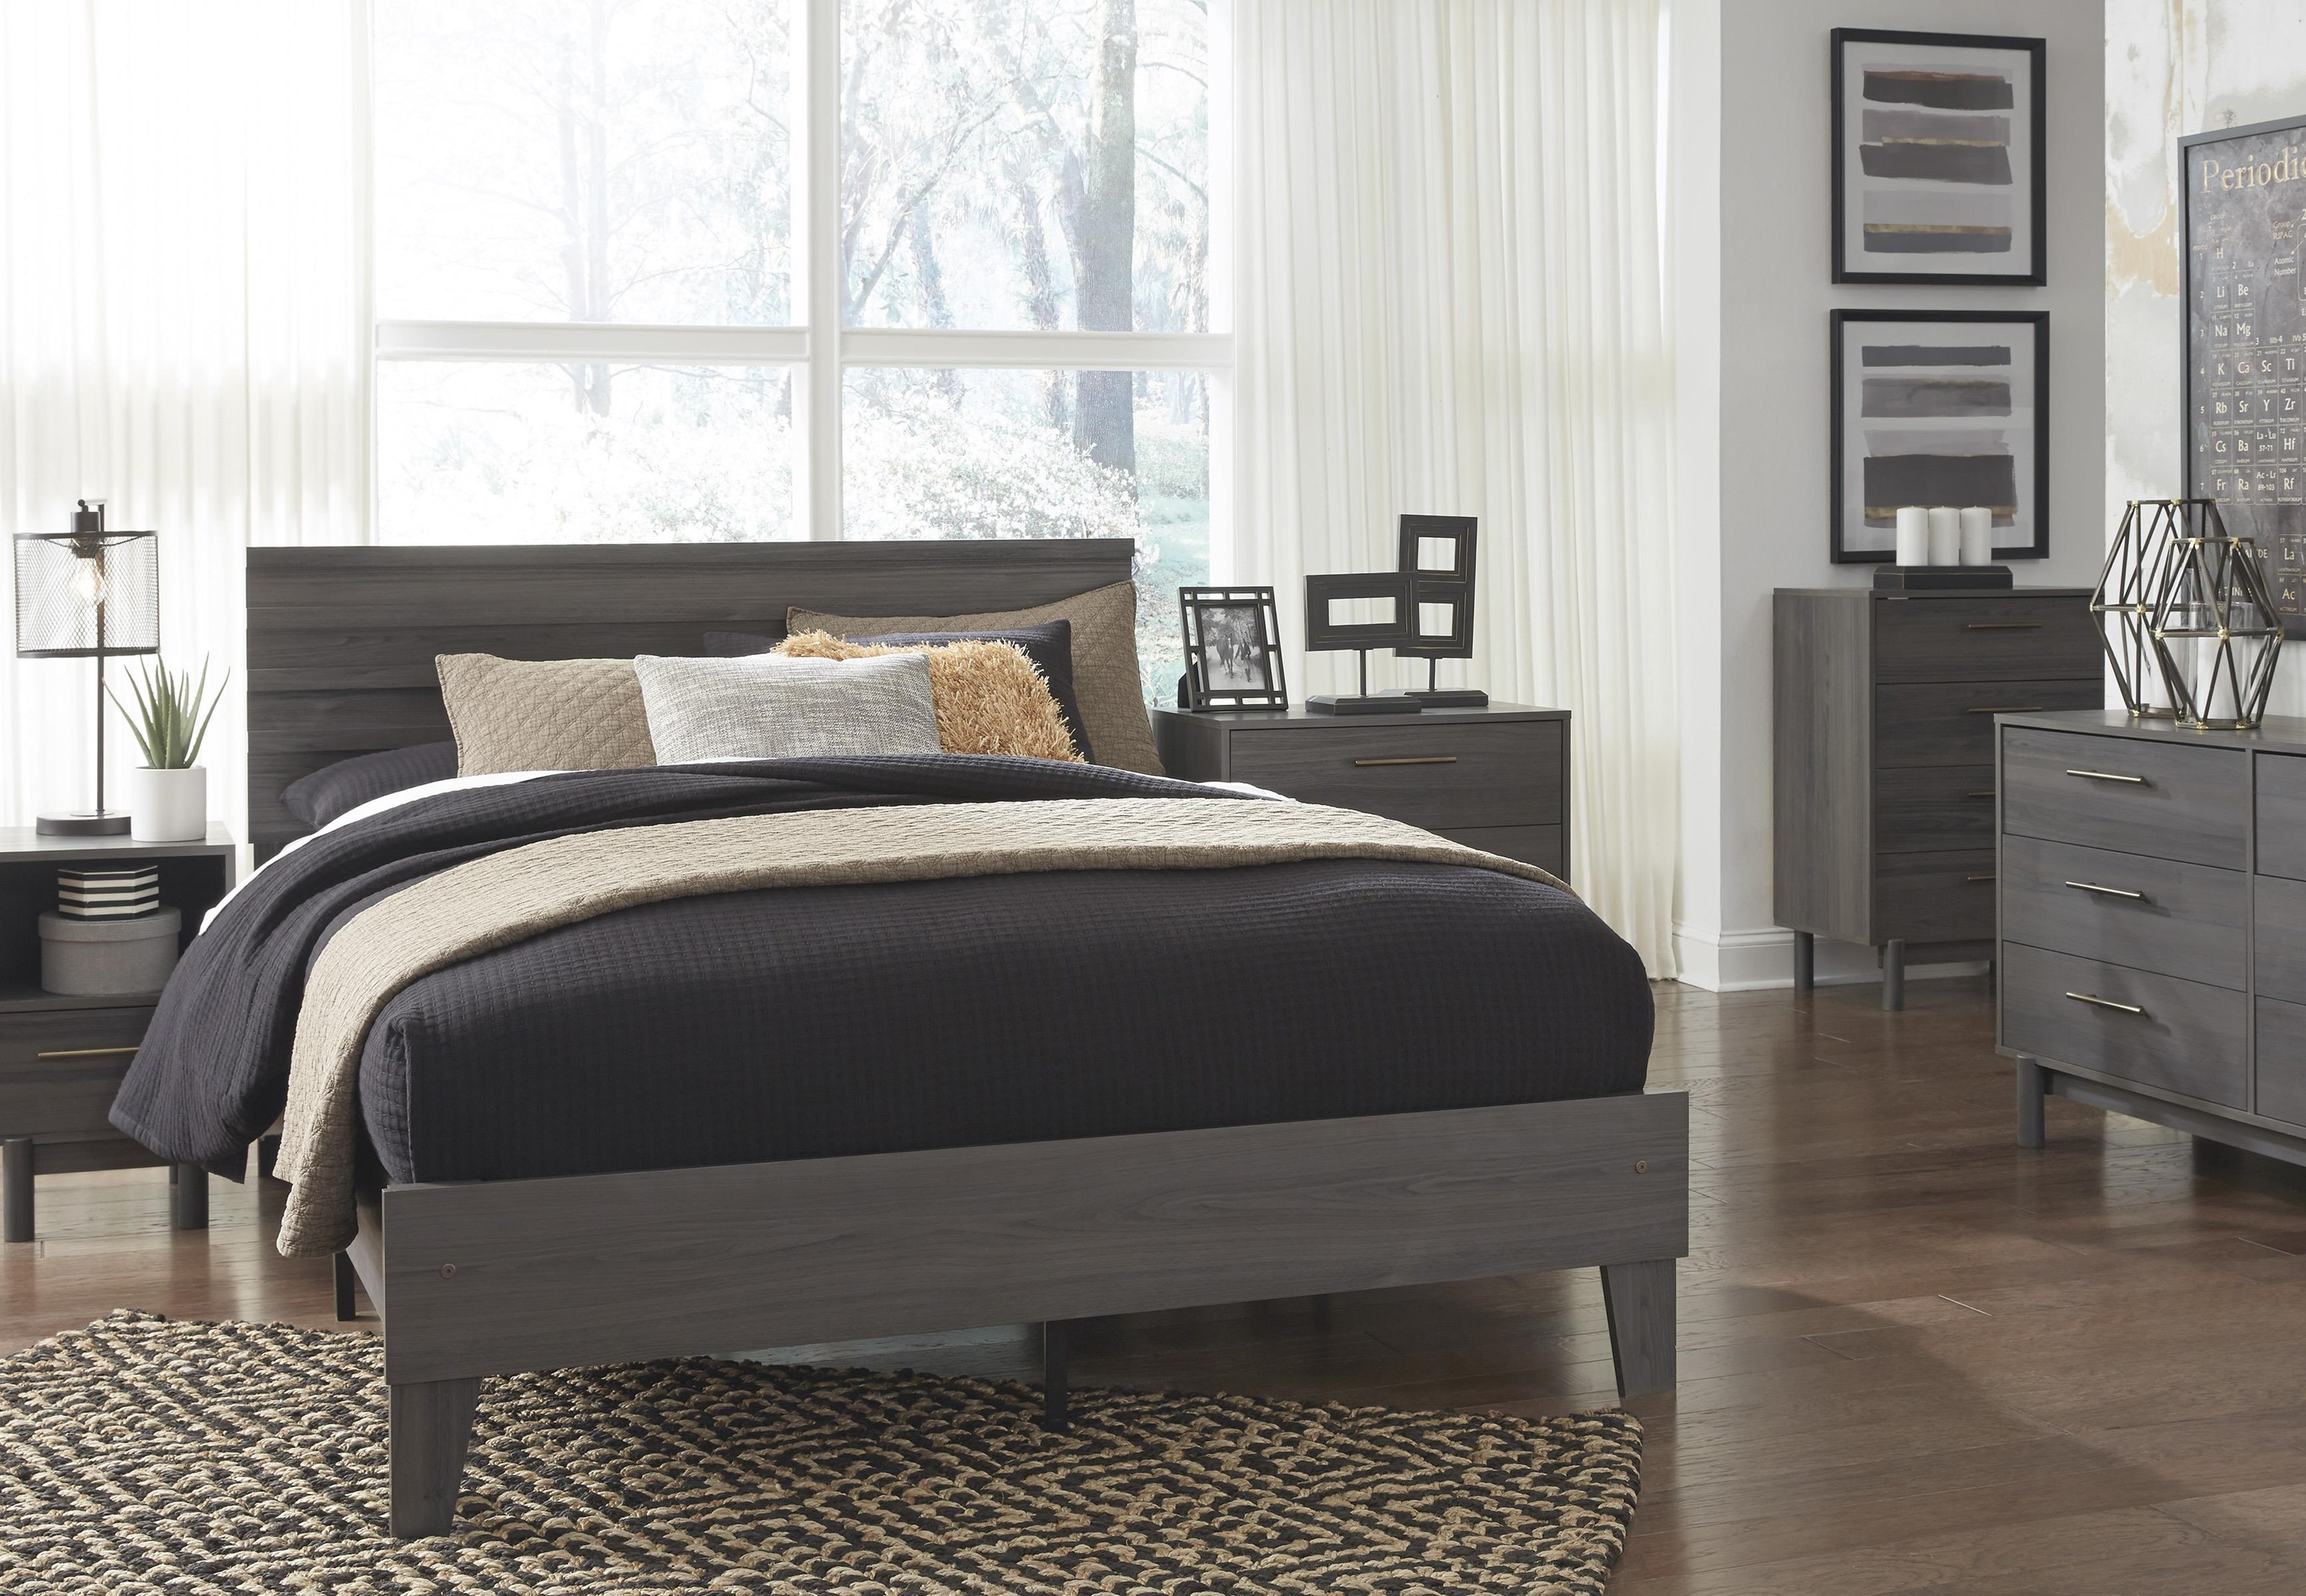 Brymont 3 Piece Queen Bedroom Set by Signature Design by Ashley at Sam Levitz Outlet